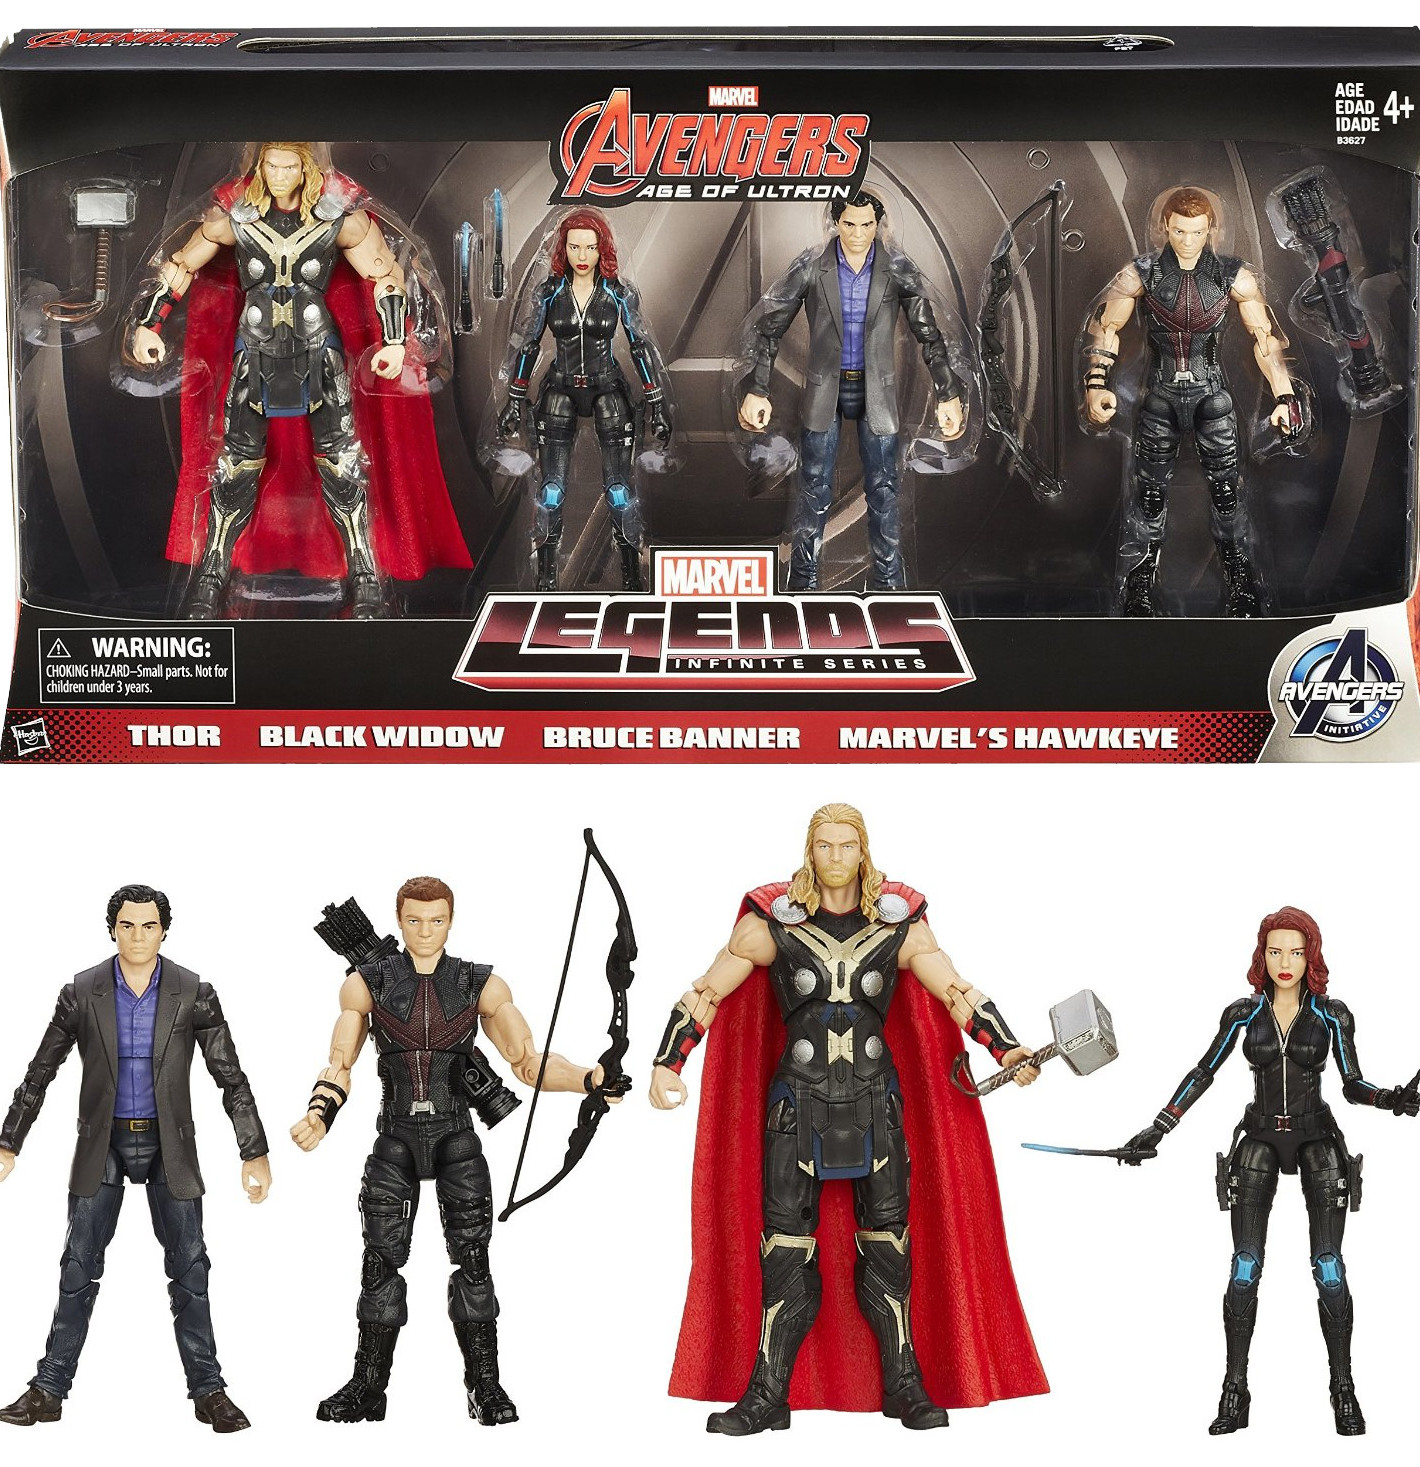 Amazon Avengers Legends 4-Pack Sale: 50% Off Today! - Marvel Toy News